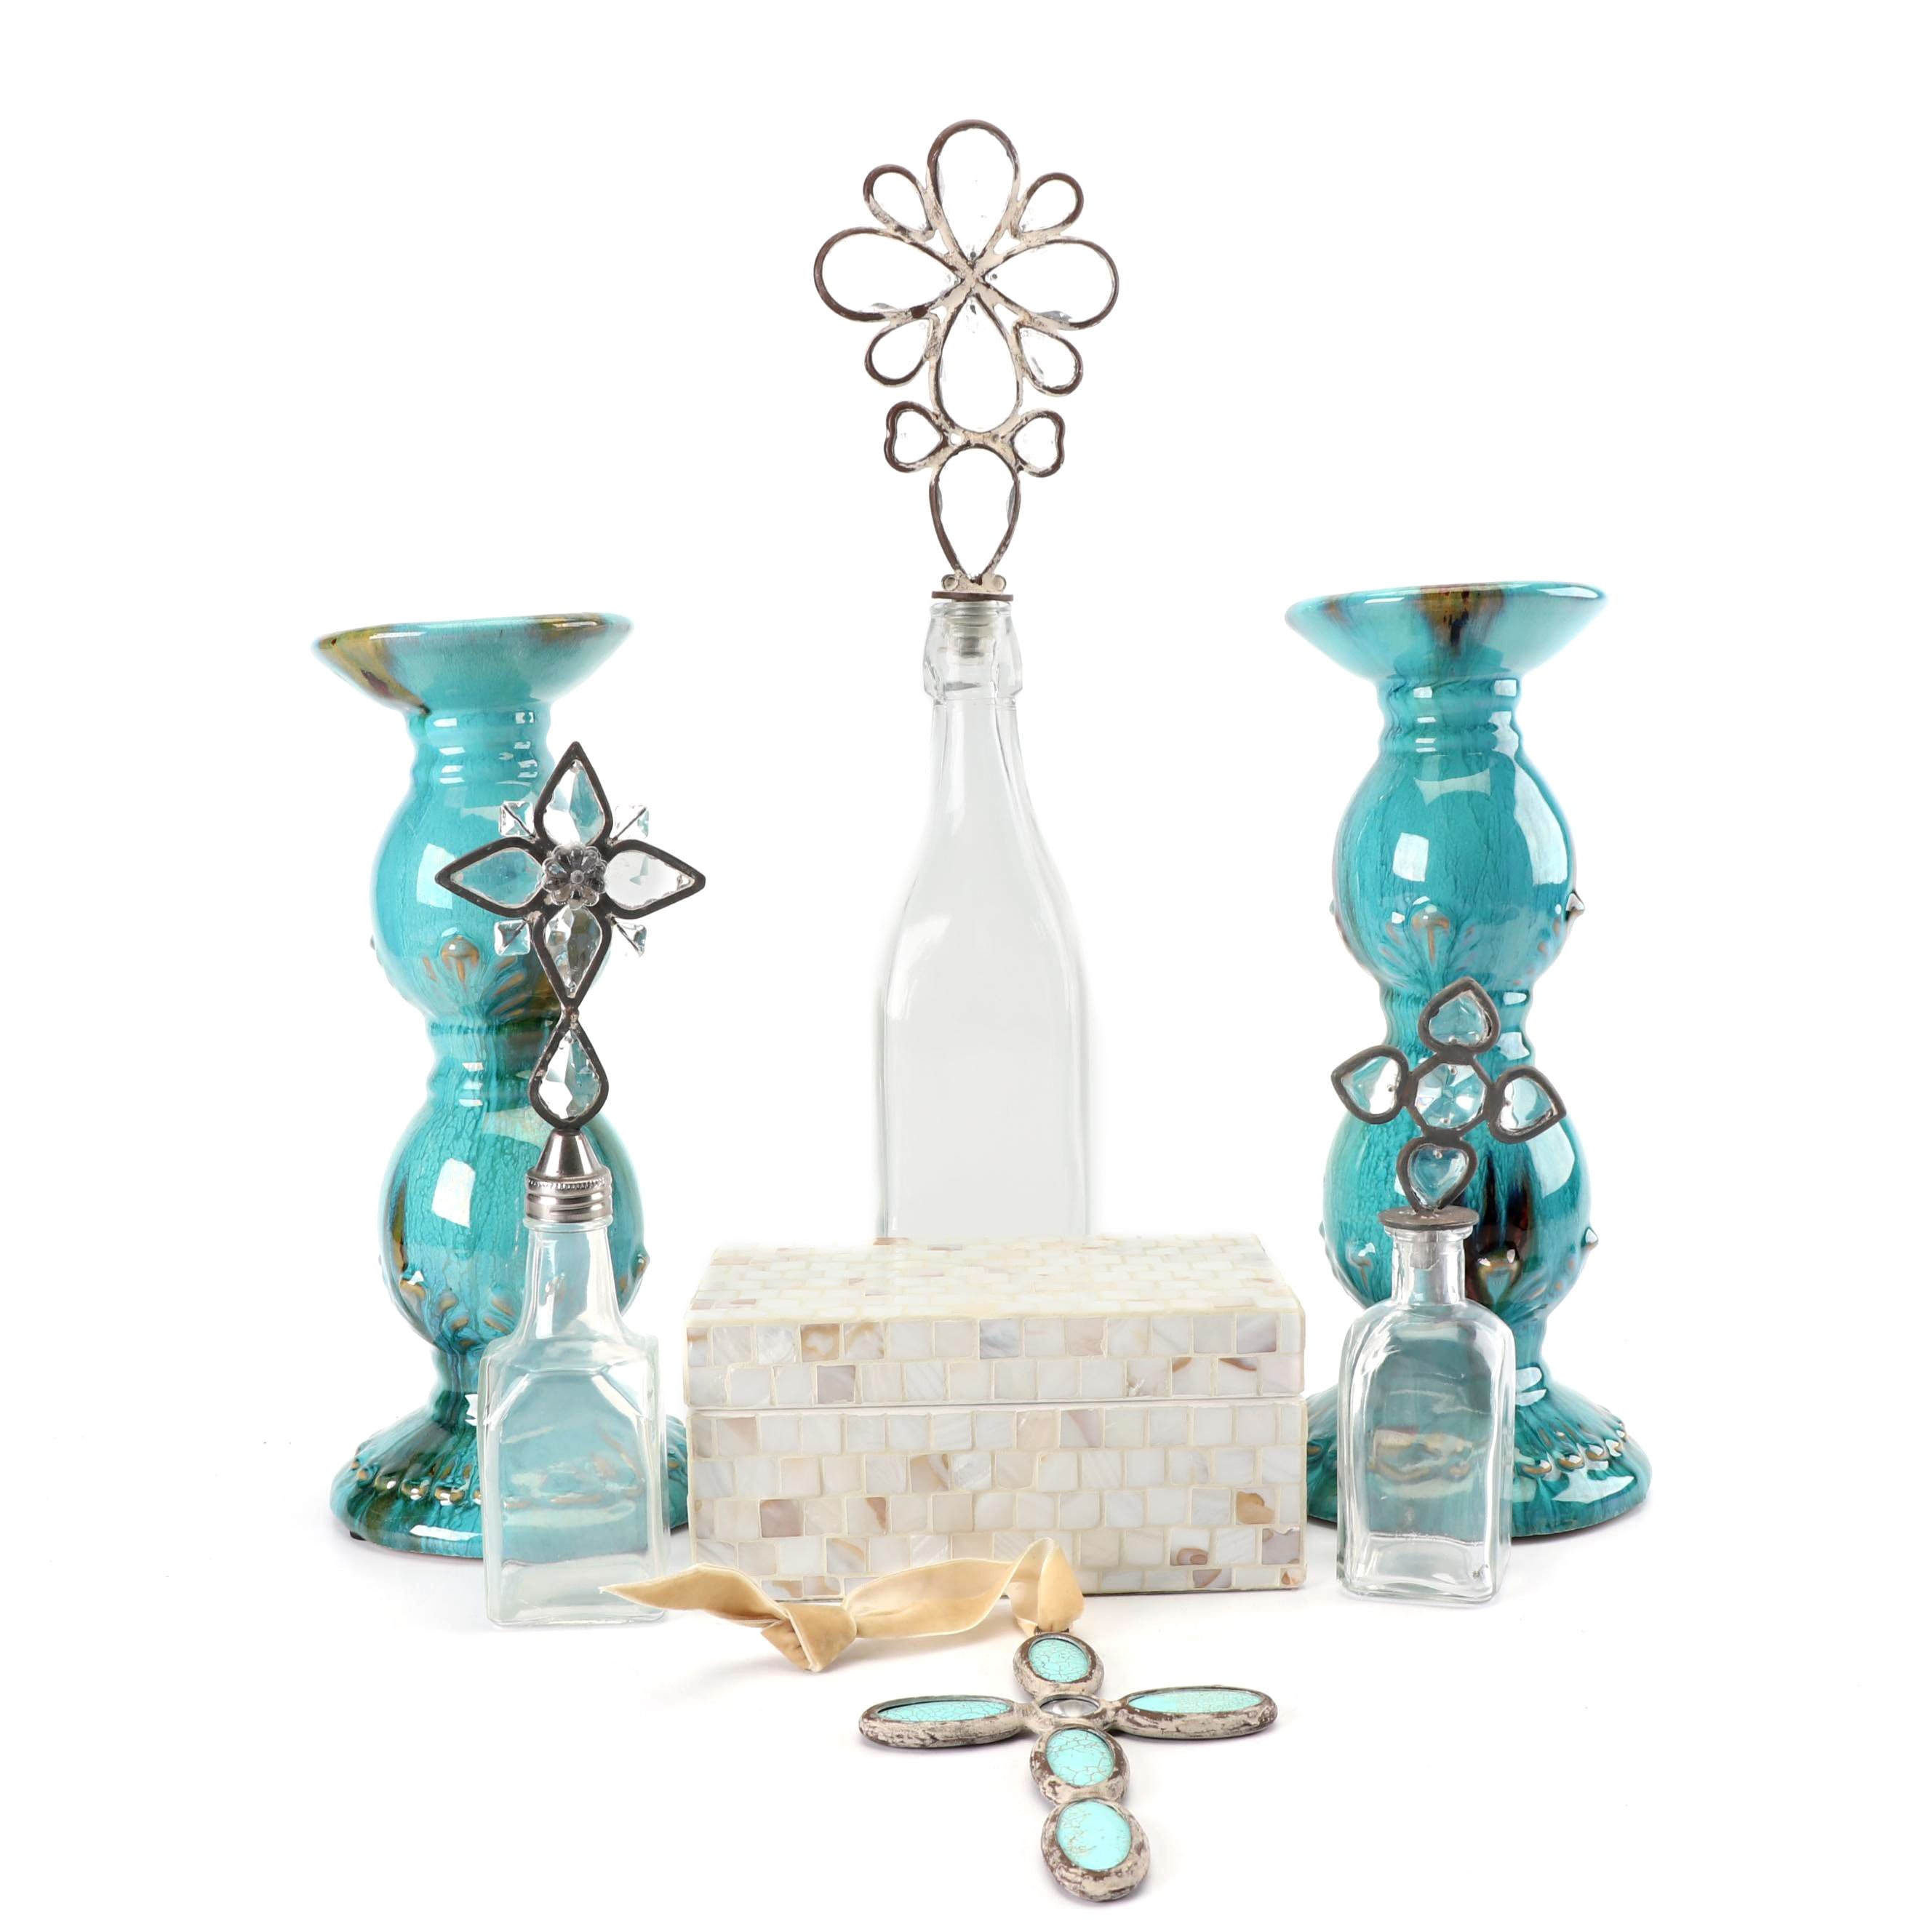 Glass Bottles, Ceramic Candle Holders, and Other Decor